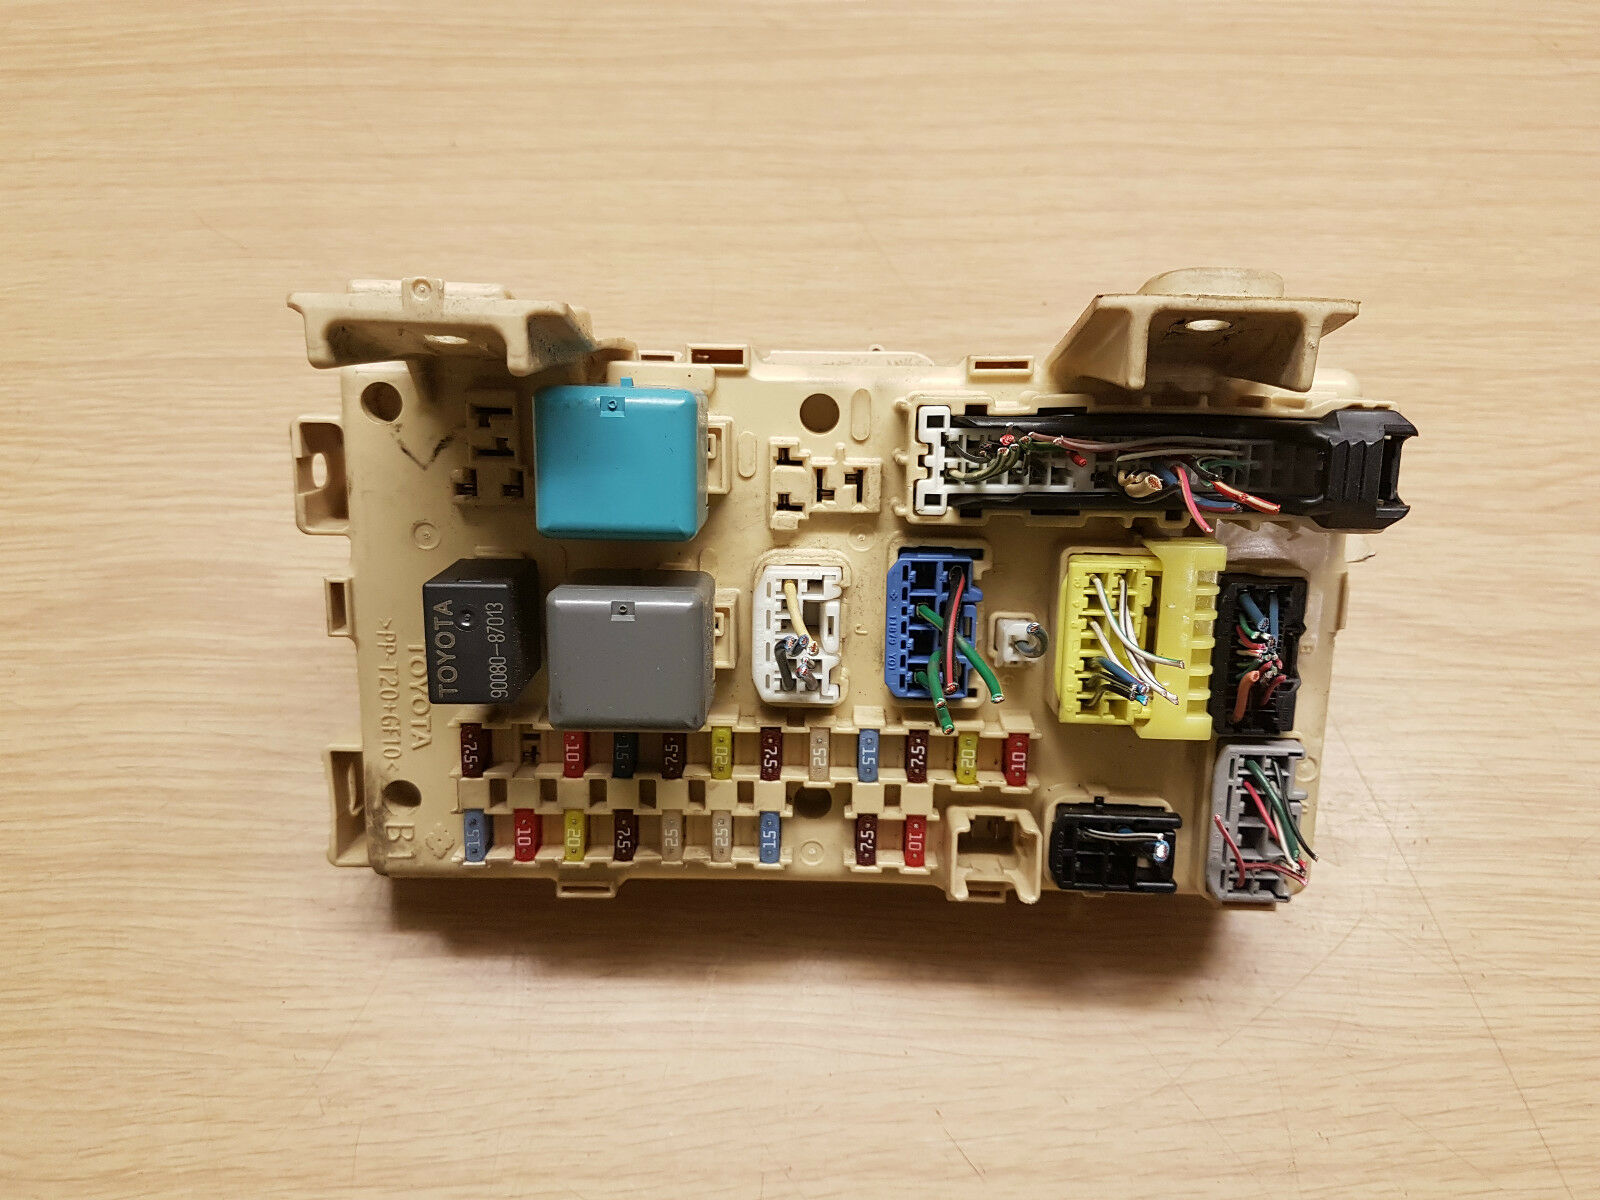 Toyota Avensis Relay Fuse Box 8264105070 3149 Picclick Uk 1 Of 4only Available